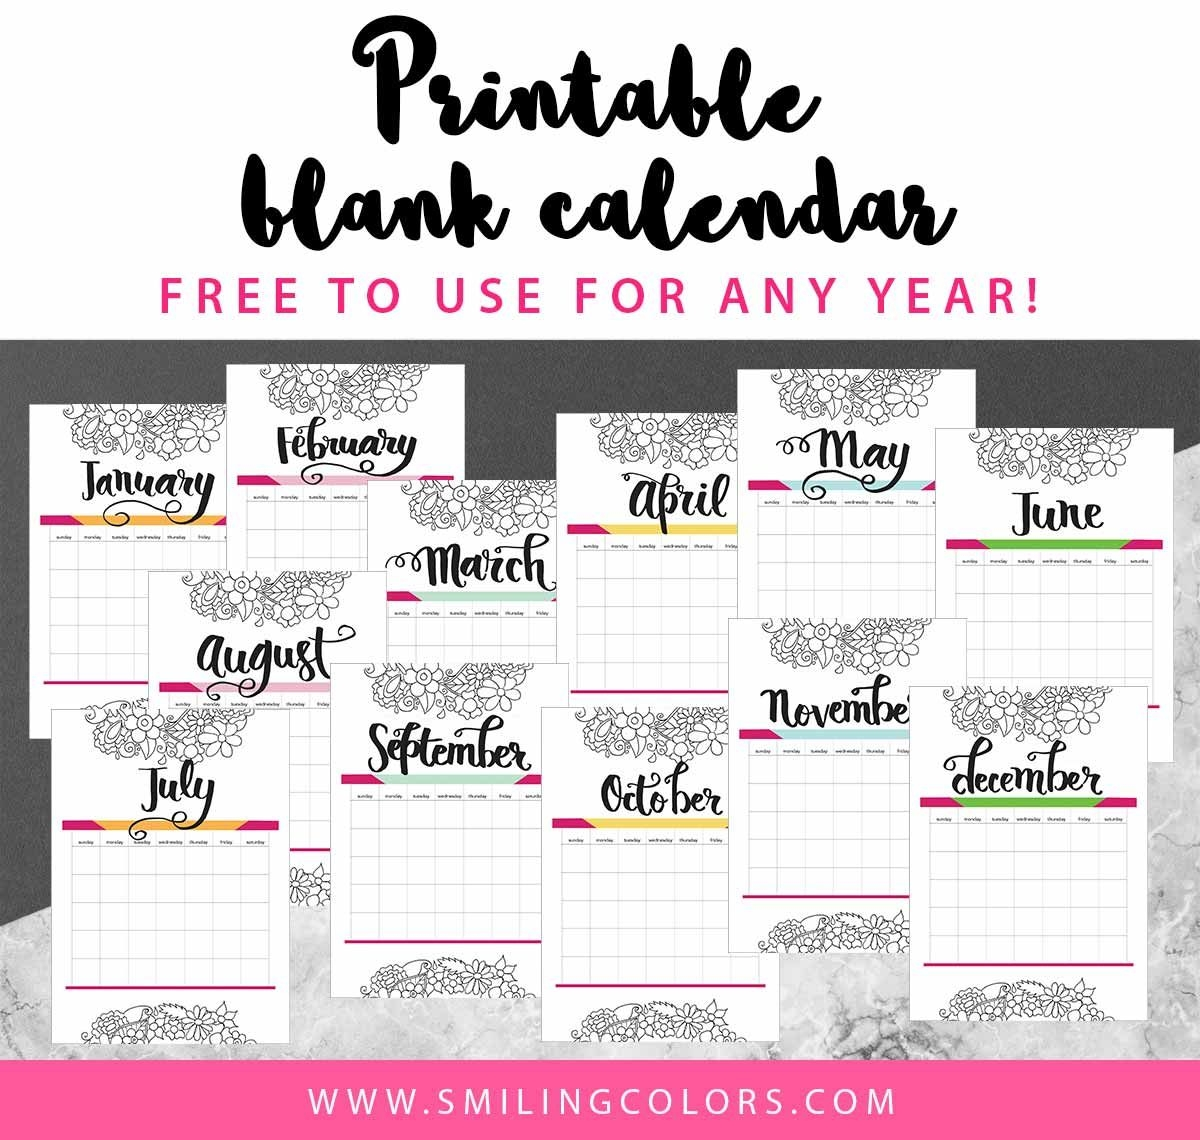 Printable Blank Calendar Free To Use For Any Year